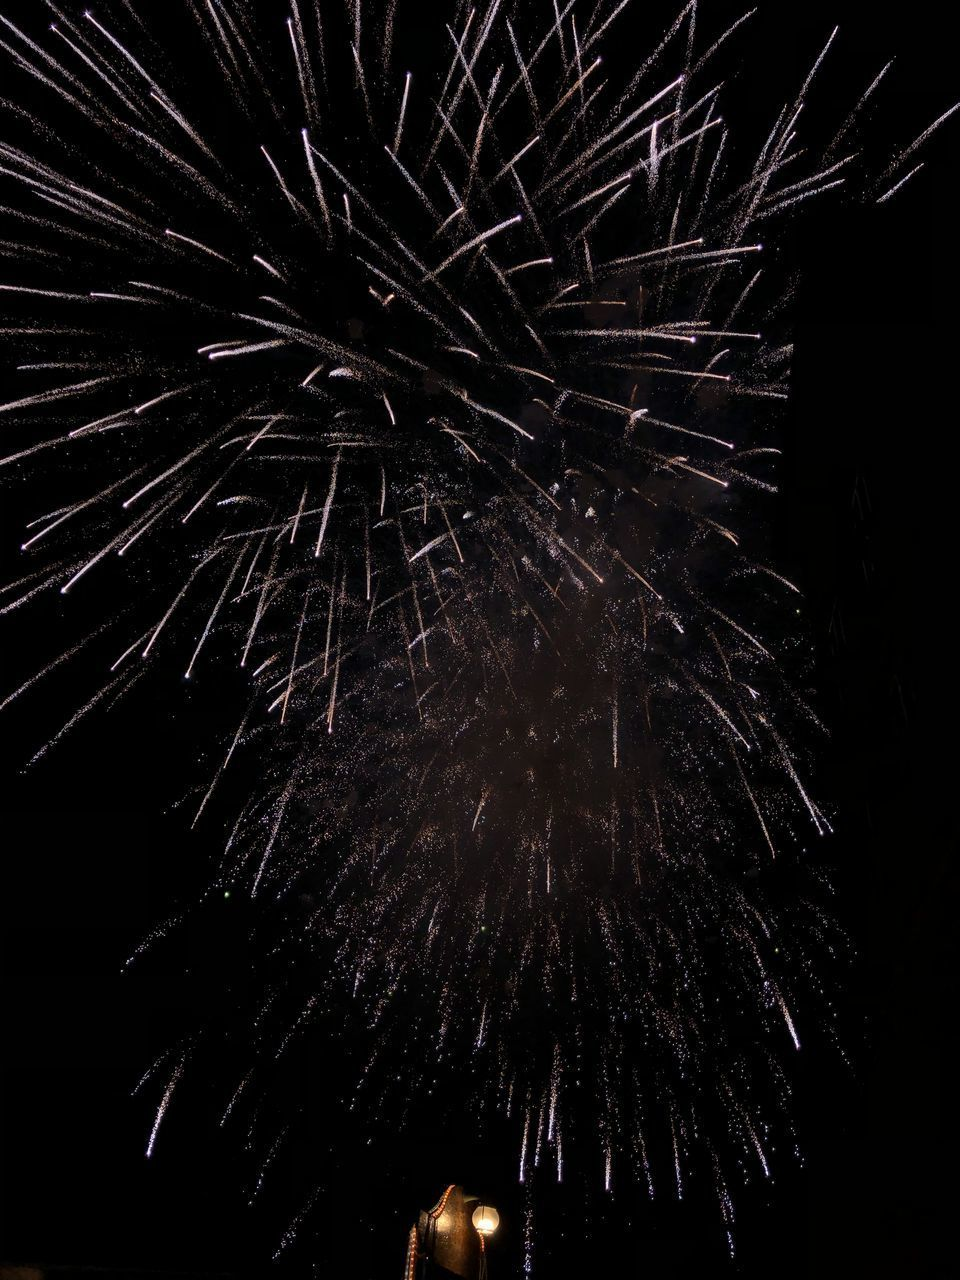 night, illuminated, firework, low angle view, celebration, firework display, event, exploding, arts culture and entertainment, motion, sky, no people, long exposure, firework - man made object, light, nature, sparks, glowing, blurred motion, celebration event, explosive